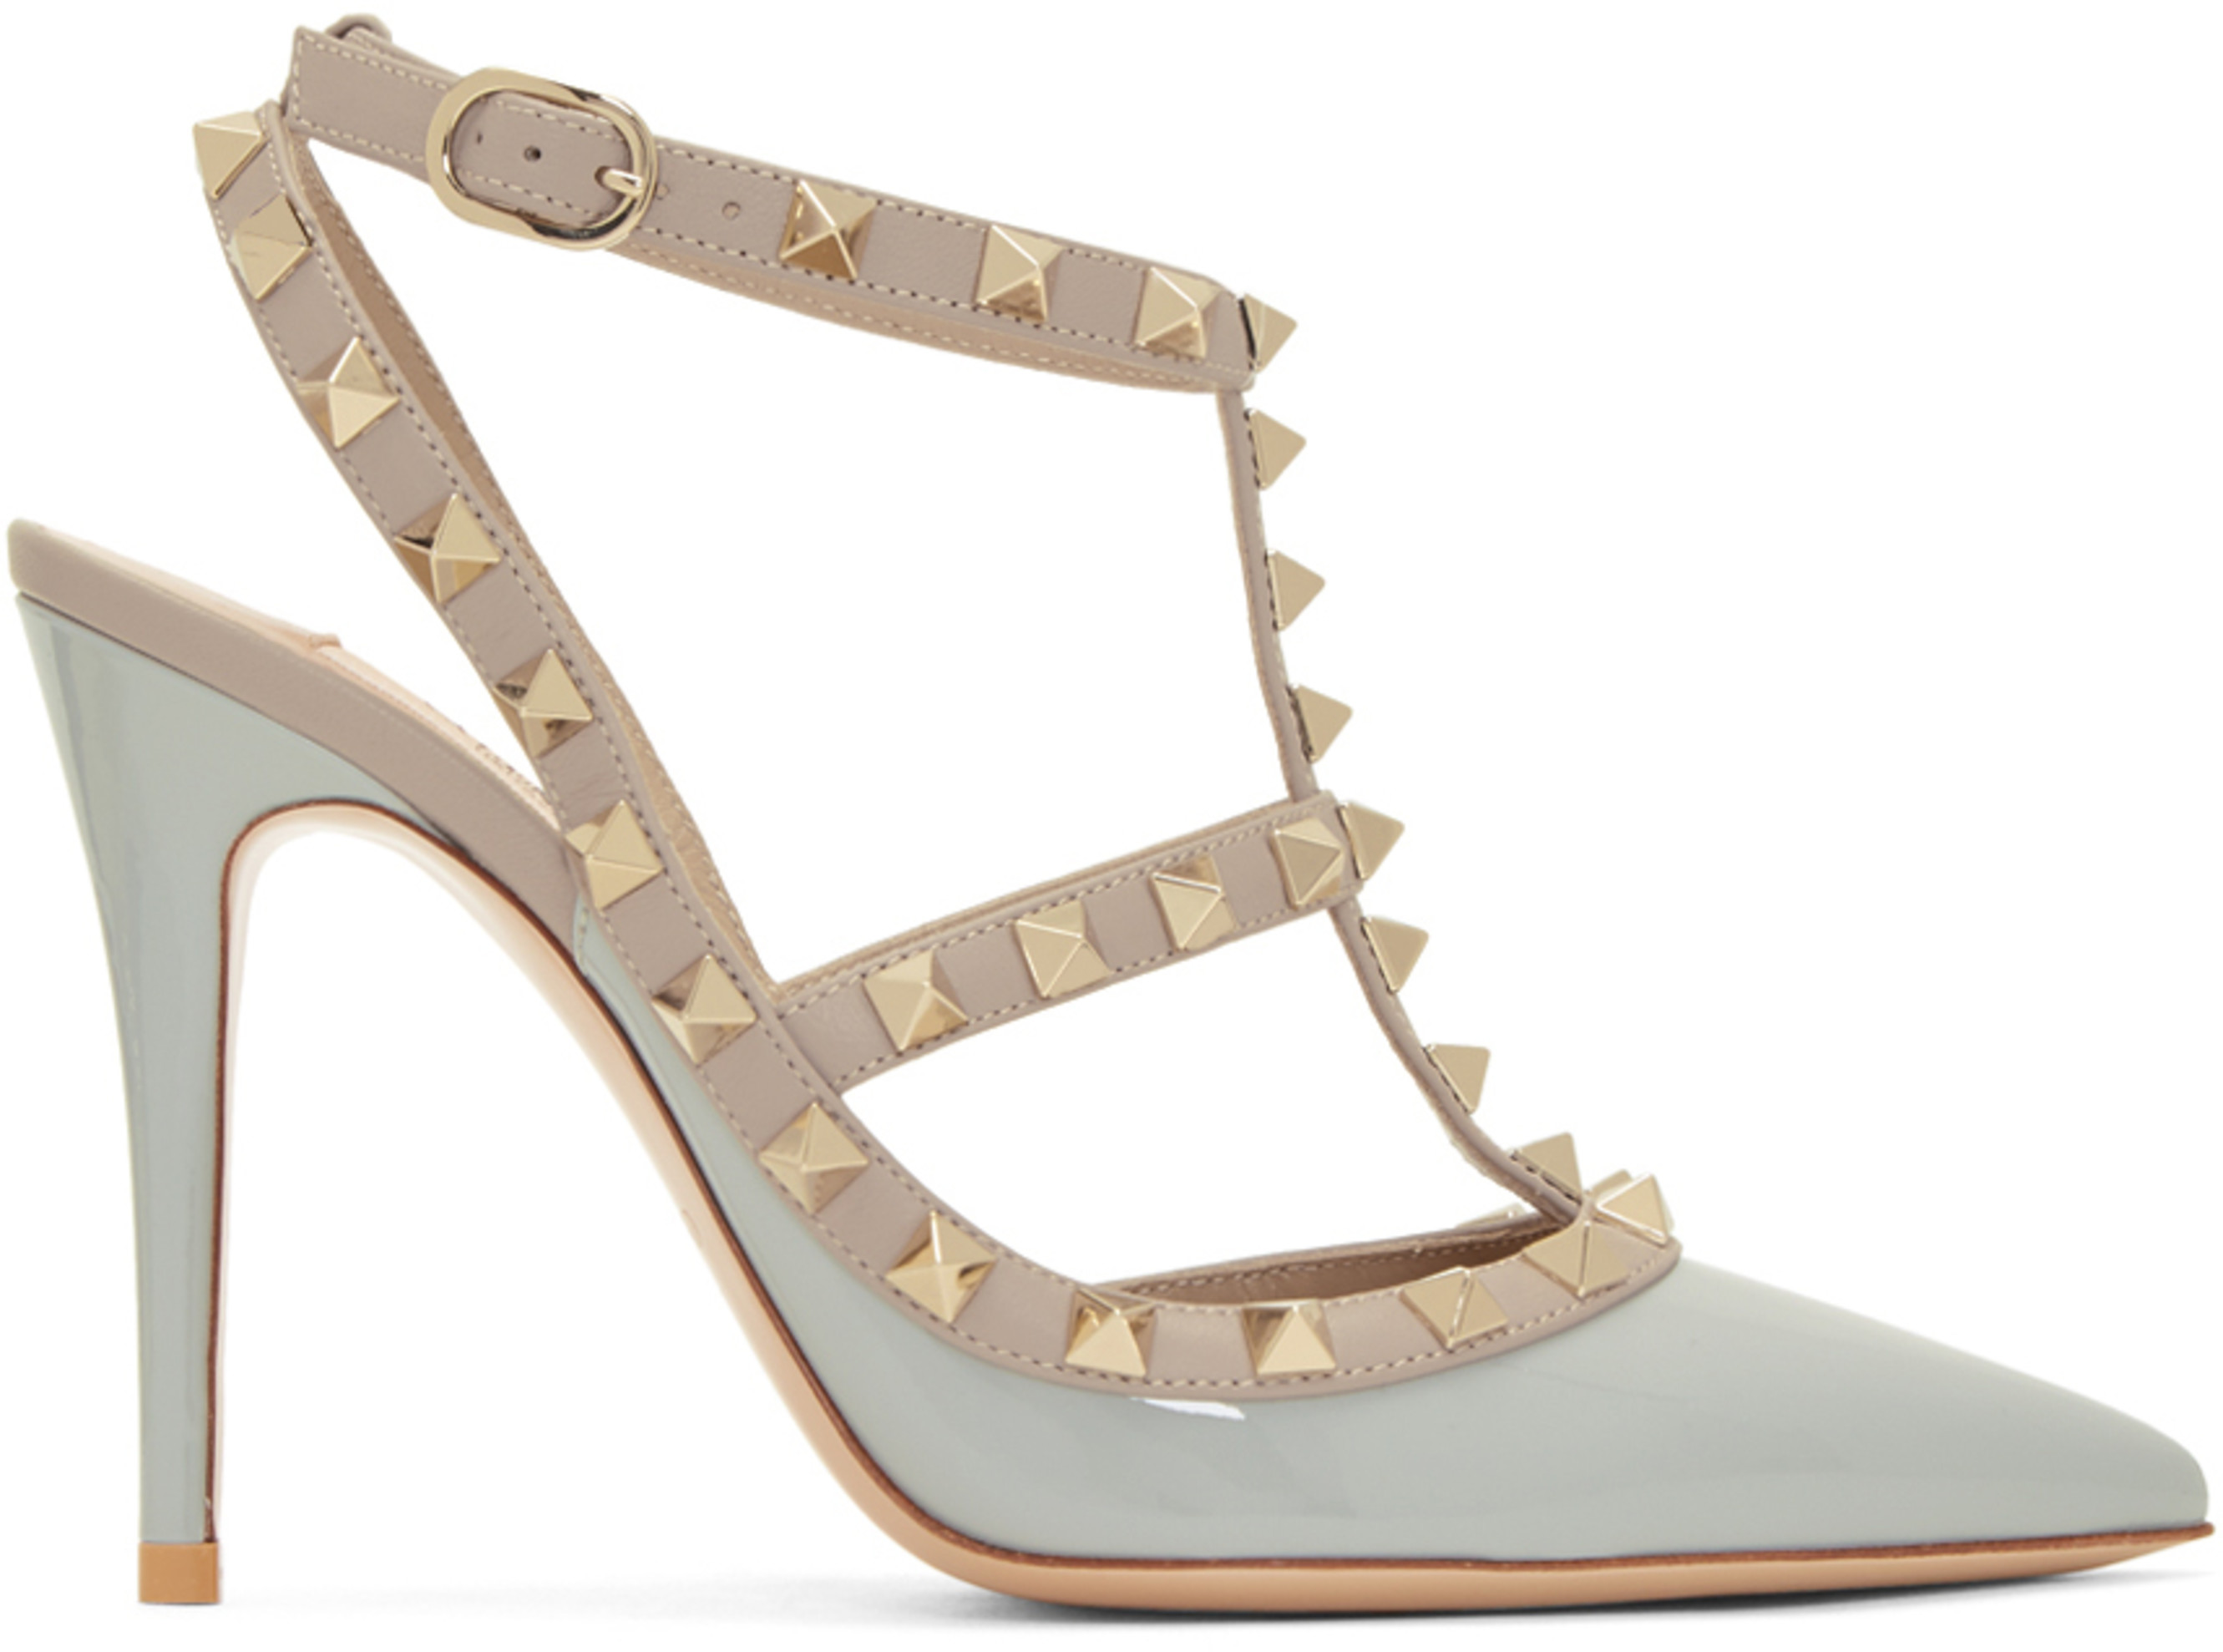 5d3a9fb97b30 Valentino shoes for Women